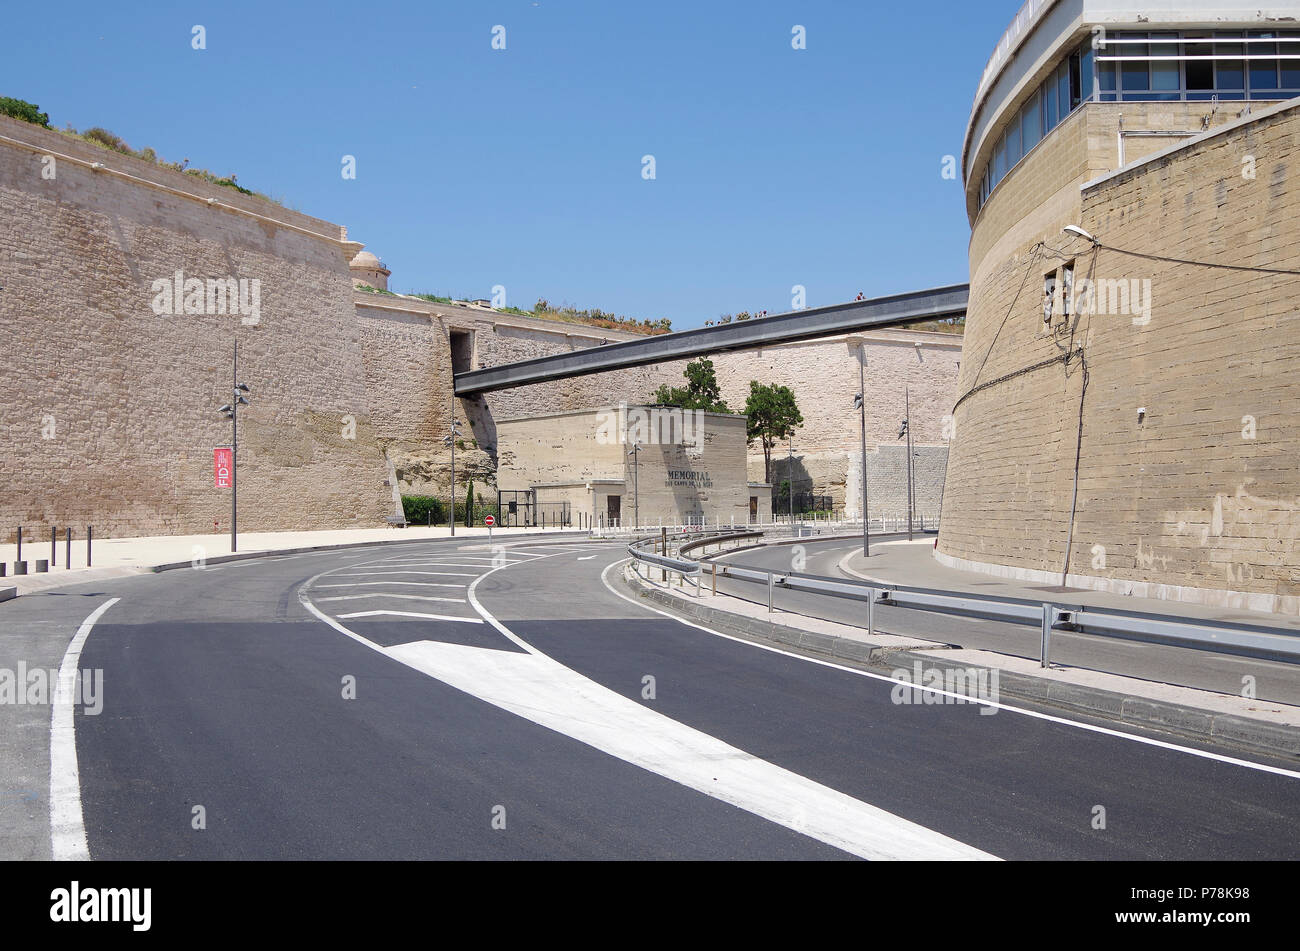 Marseille, Fort St Jean, and modern footbridge over Avenue Vaudoyer, linking it to Le Panier Historic district as part of the MuCEM complex Stock Photo